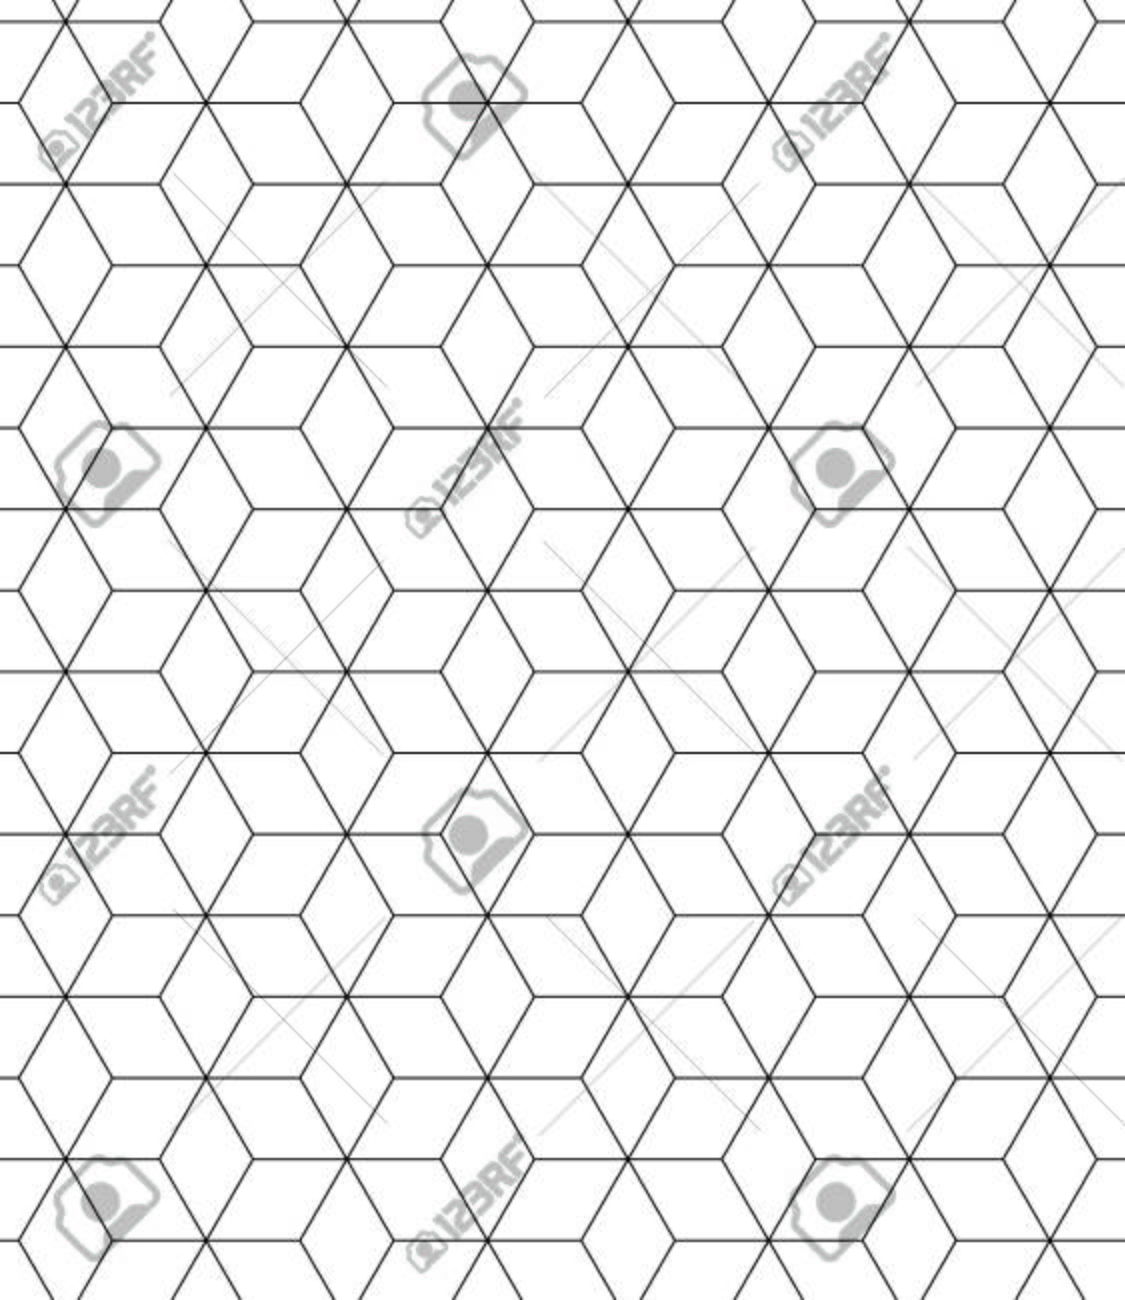 Vector modern seamless pattern sacred geometry, black and white print textile with illusion, abstract texture, monochrome fashion design - 43898334